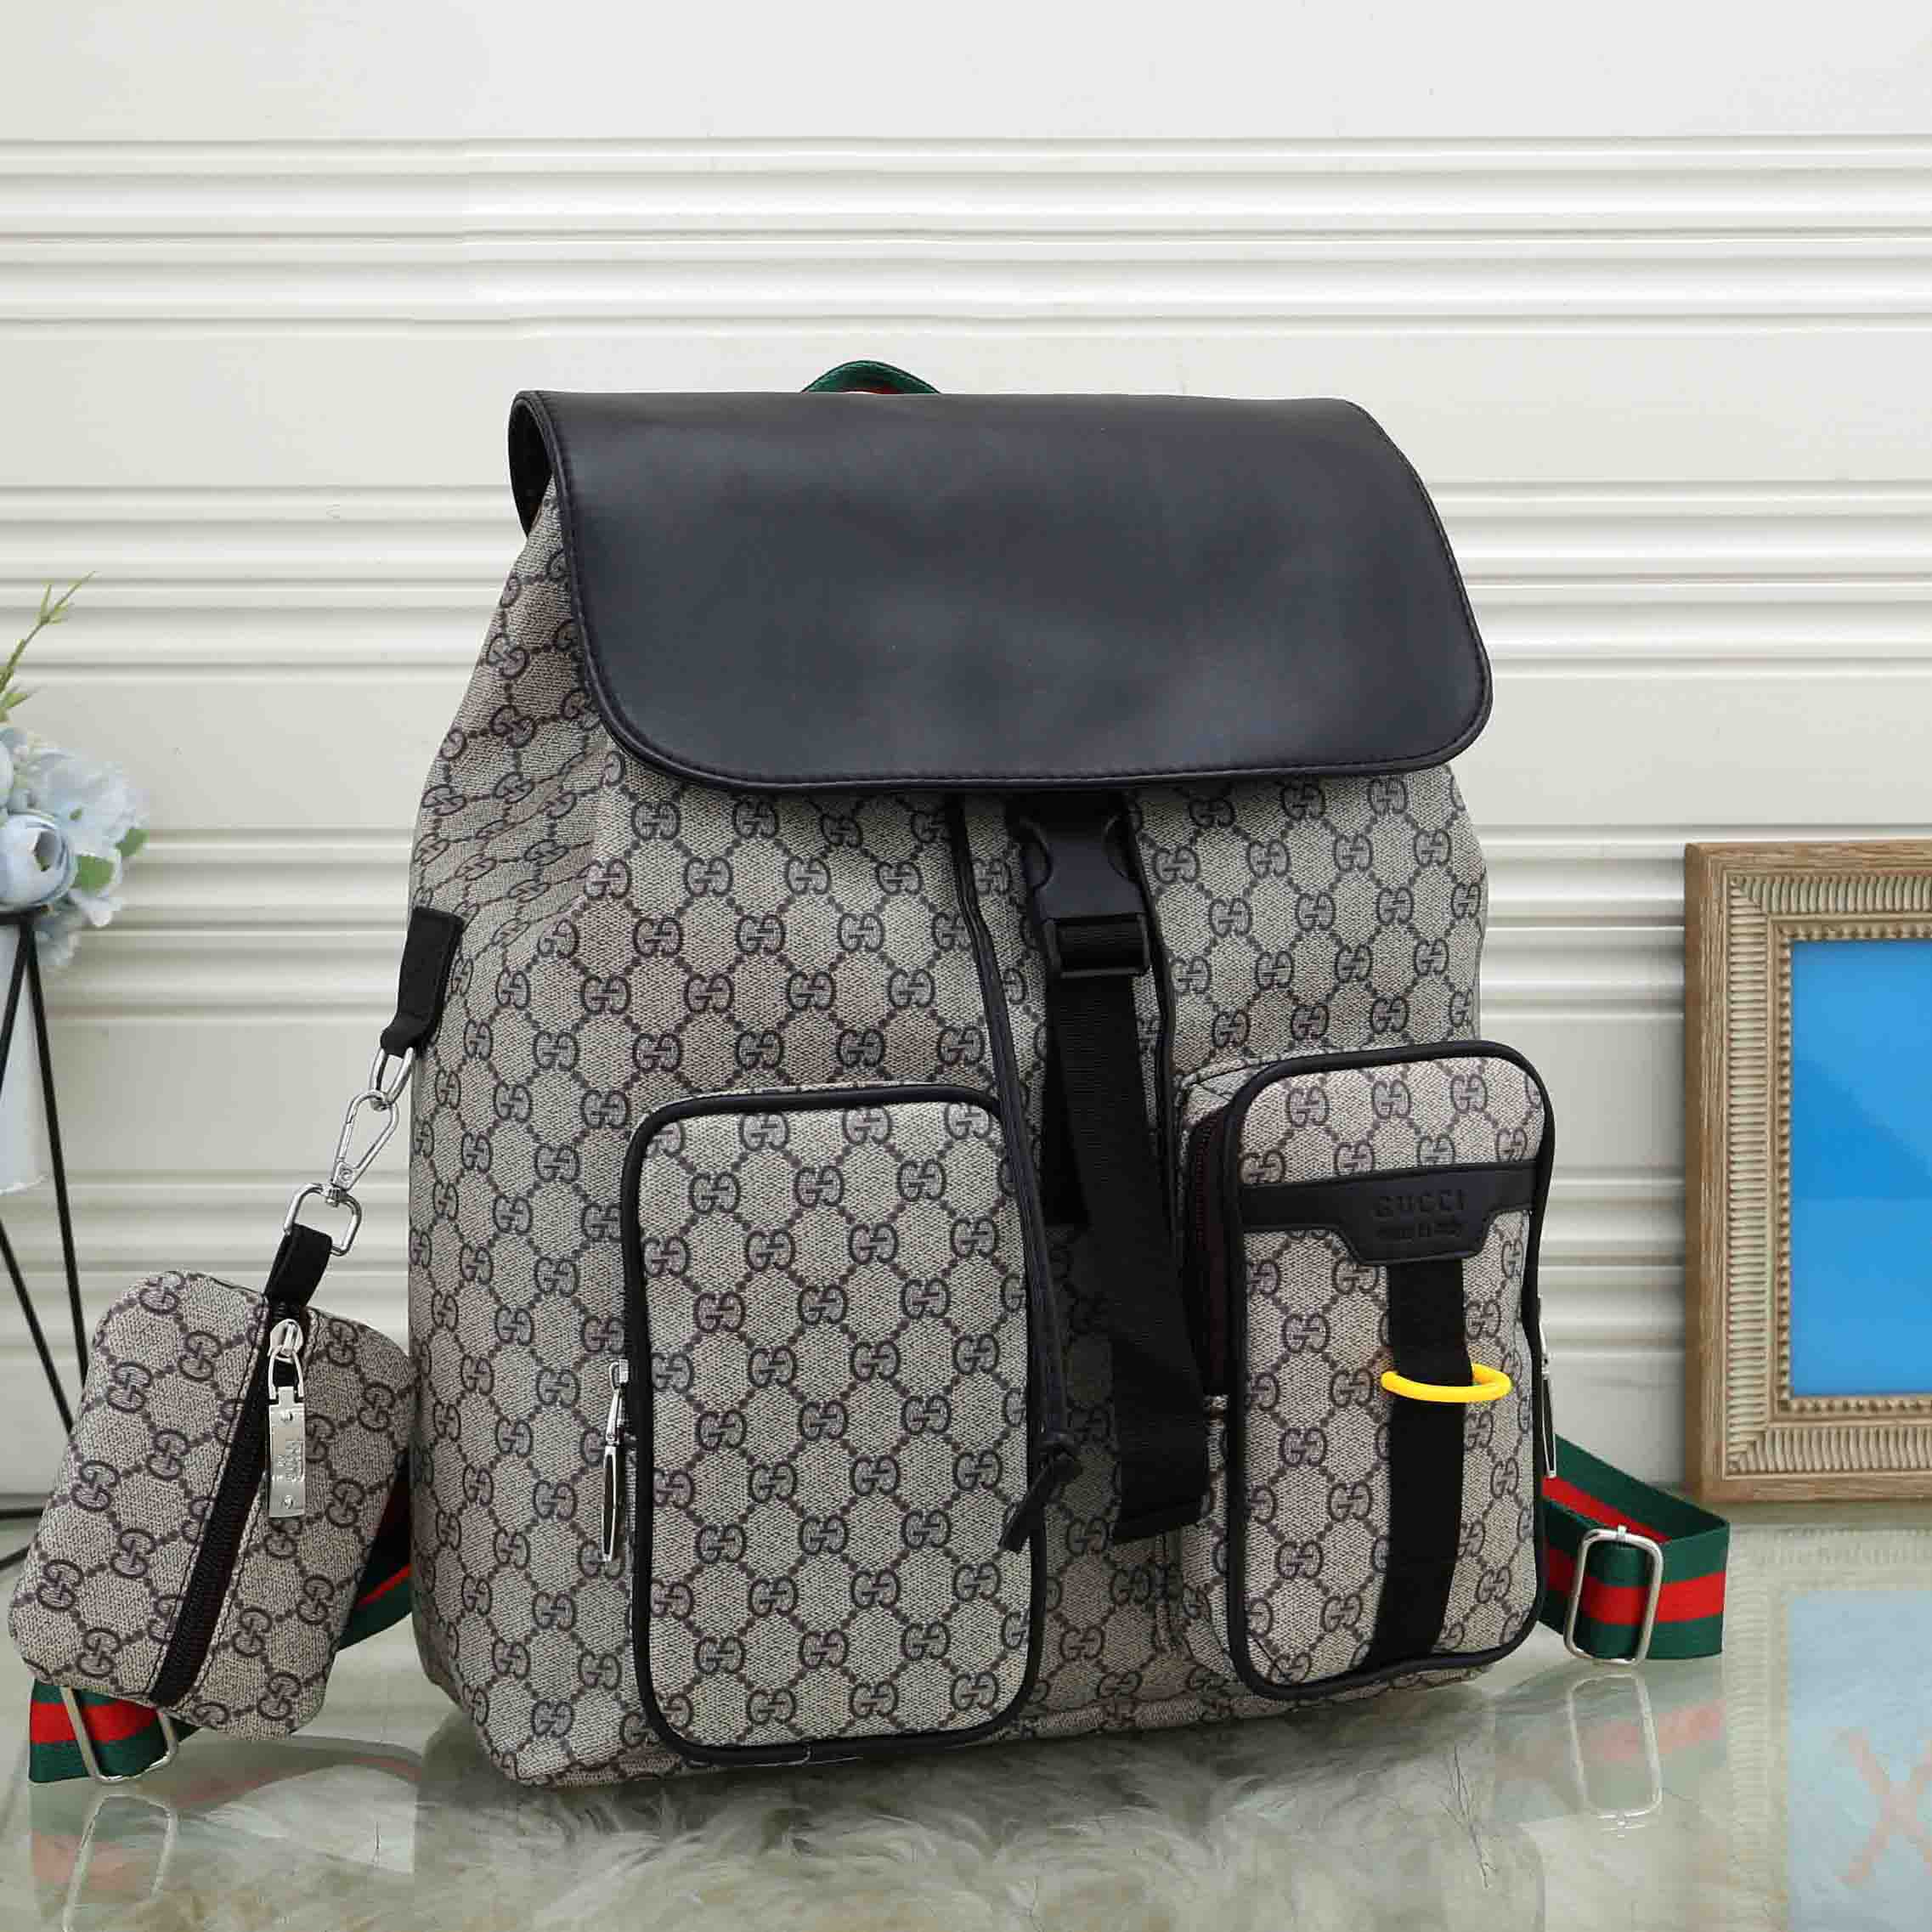 Image of Dior GG retro all-match backpack for men and women two-piece